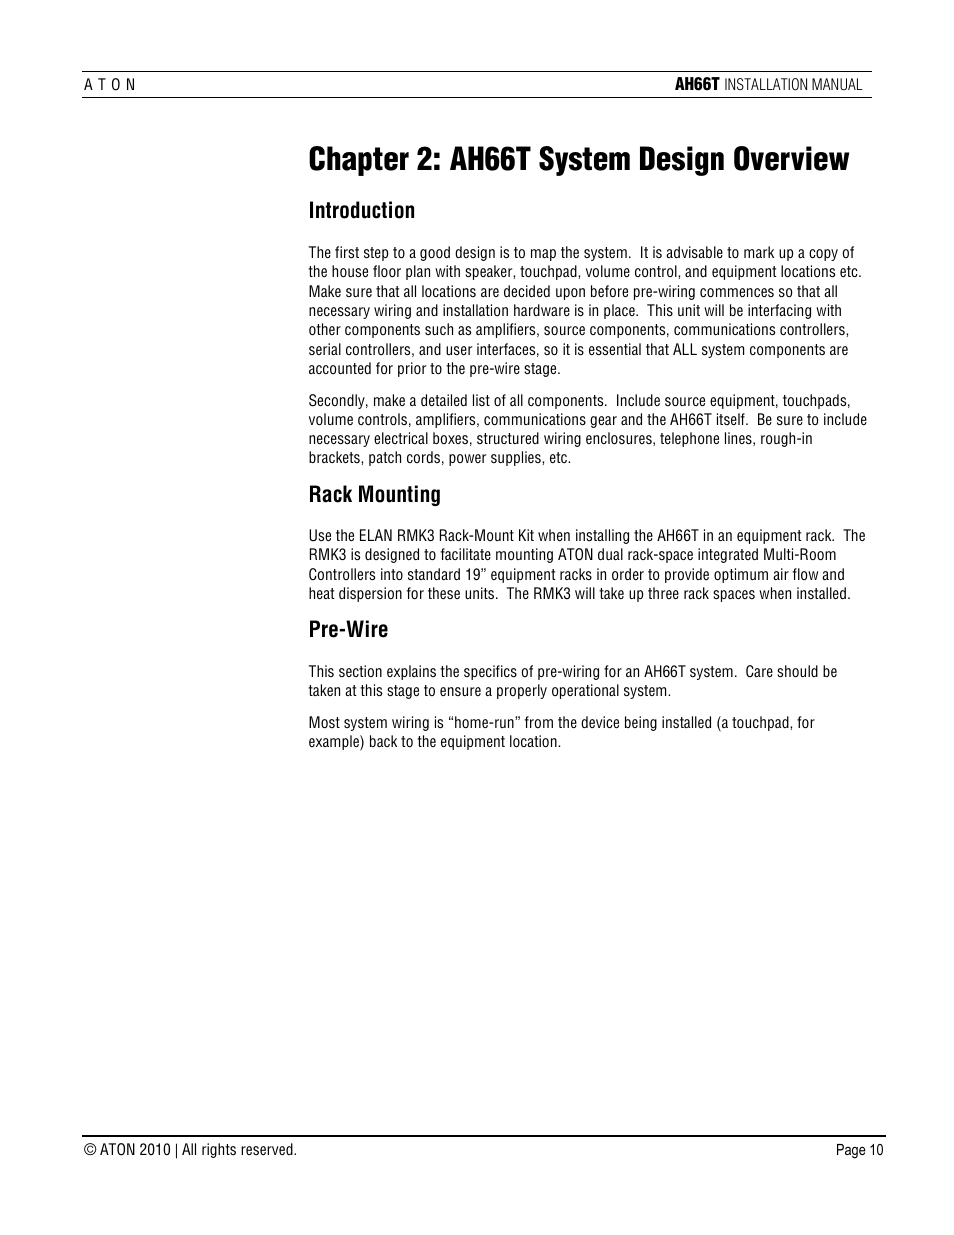 Chapter 2 Ah66t System Design Overview Introduction Rack Mounting Home Run Wiring Aton User Manual Page 11 90